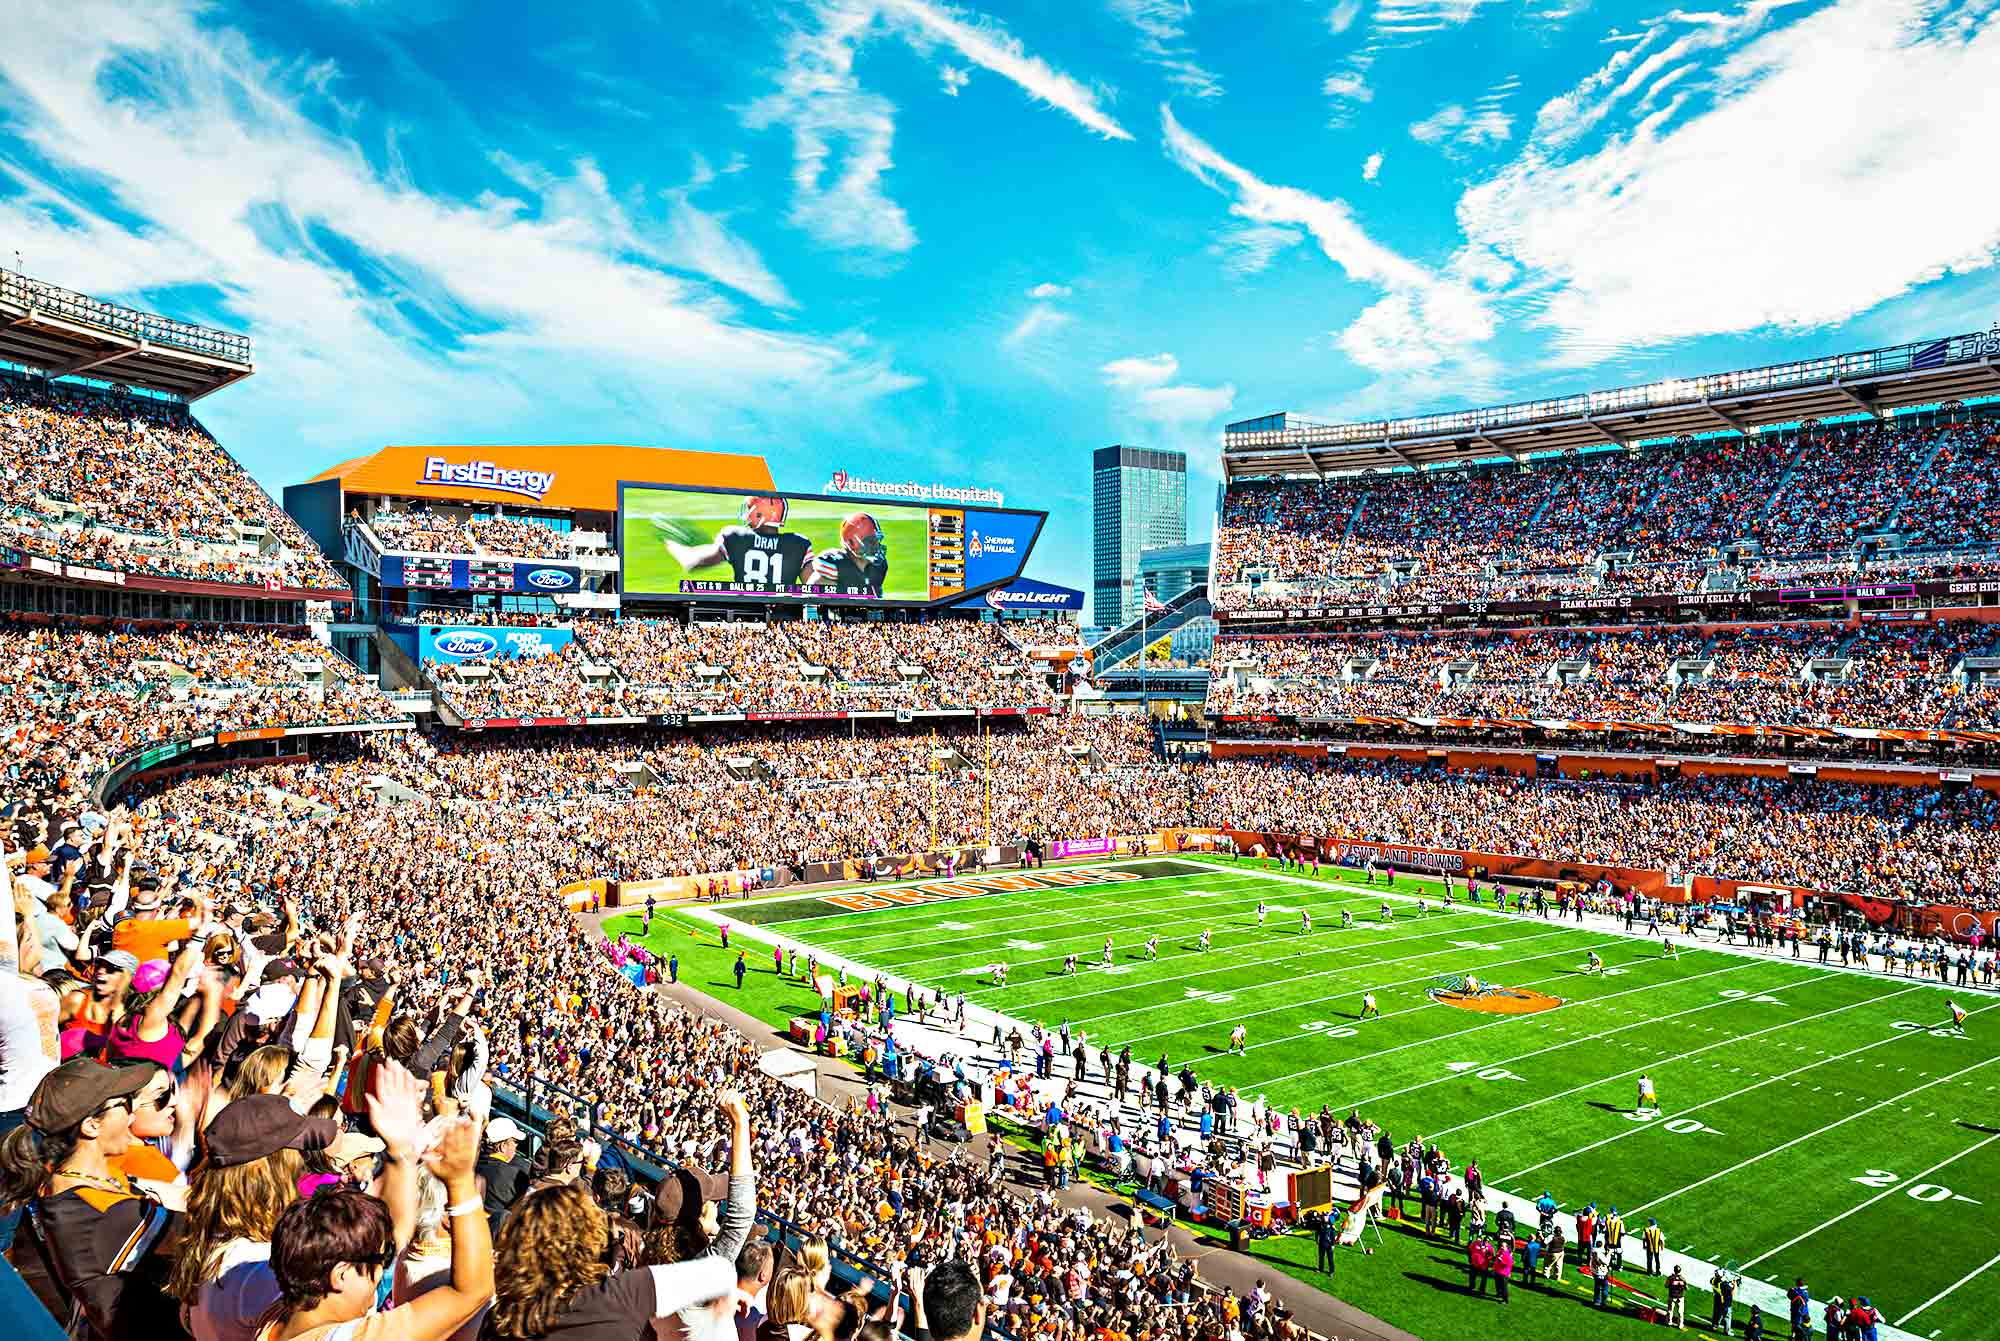 Sponsored Fan Destinations Strategic Graphics Giant HD Video Boards And A High Performance New Sound System Redefine The Experience At FirstEnergy